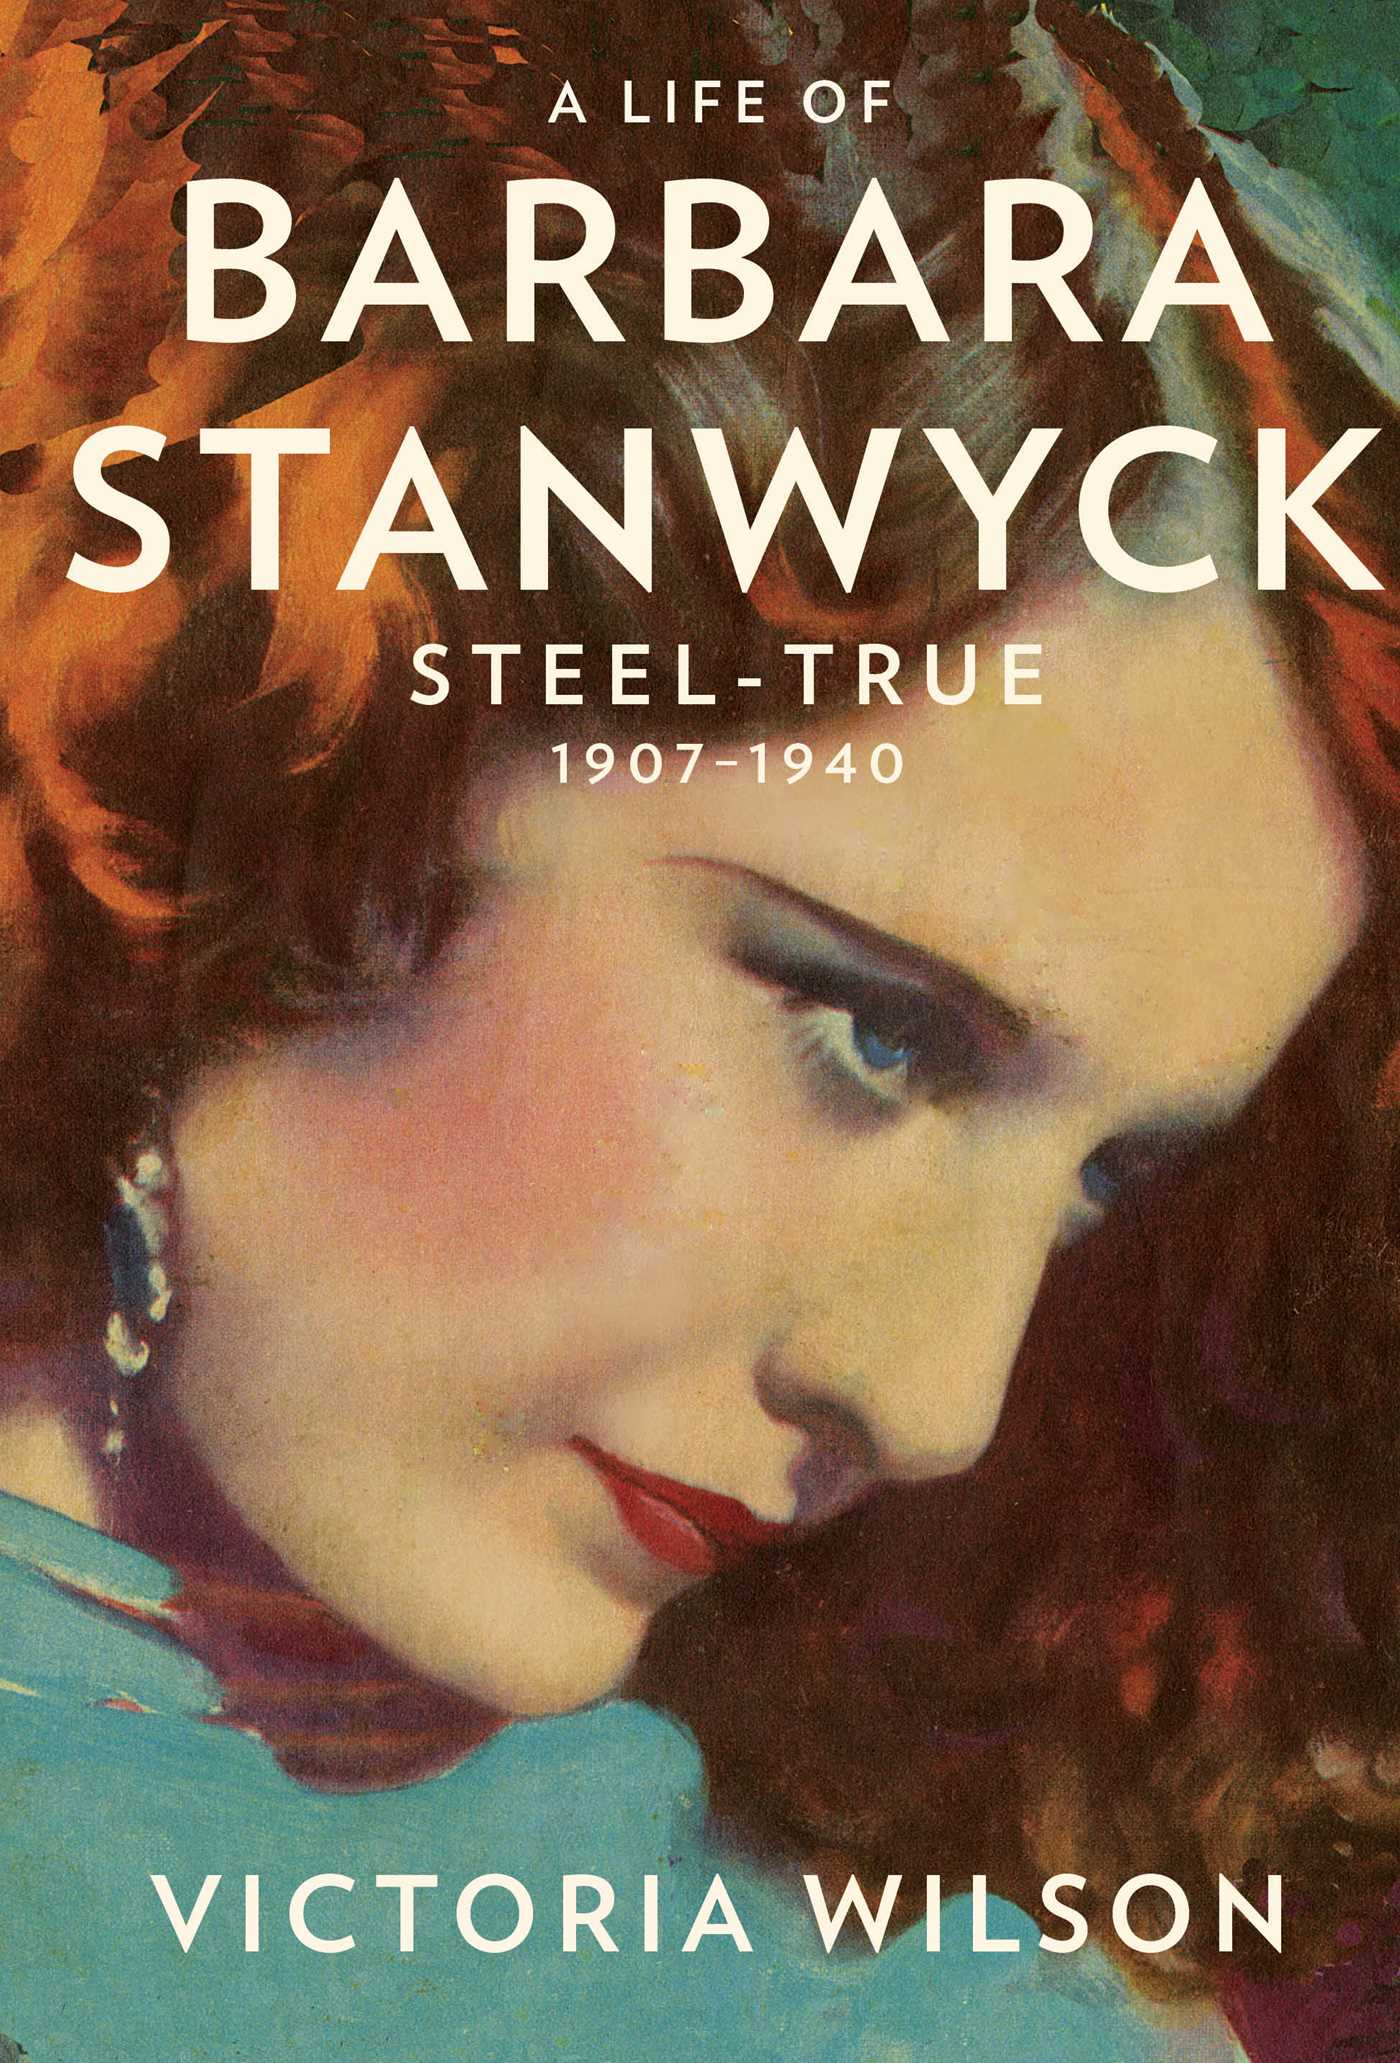 Life-of-barbara-stanwyck-9781439199985_hr